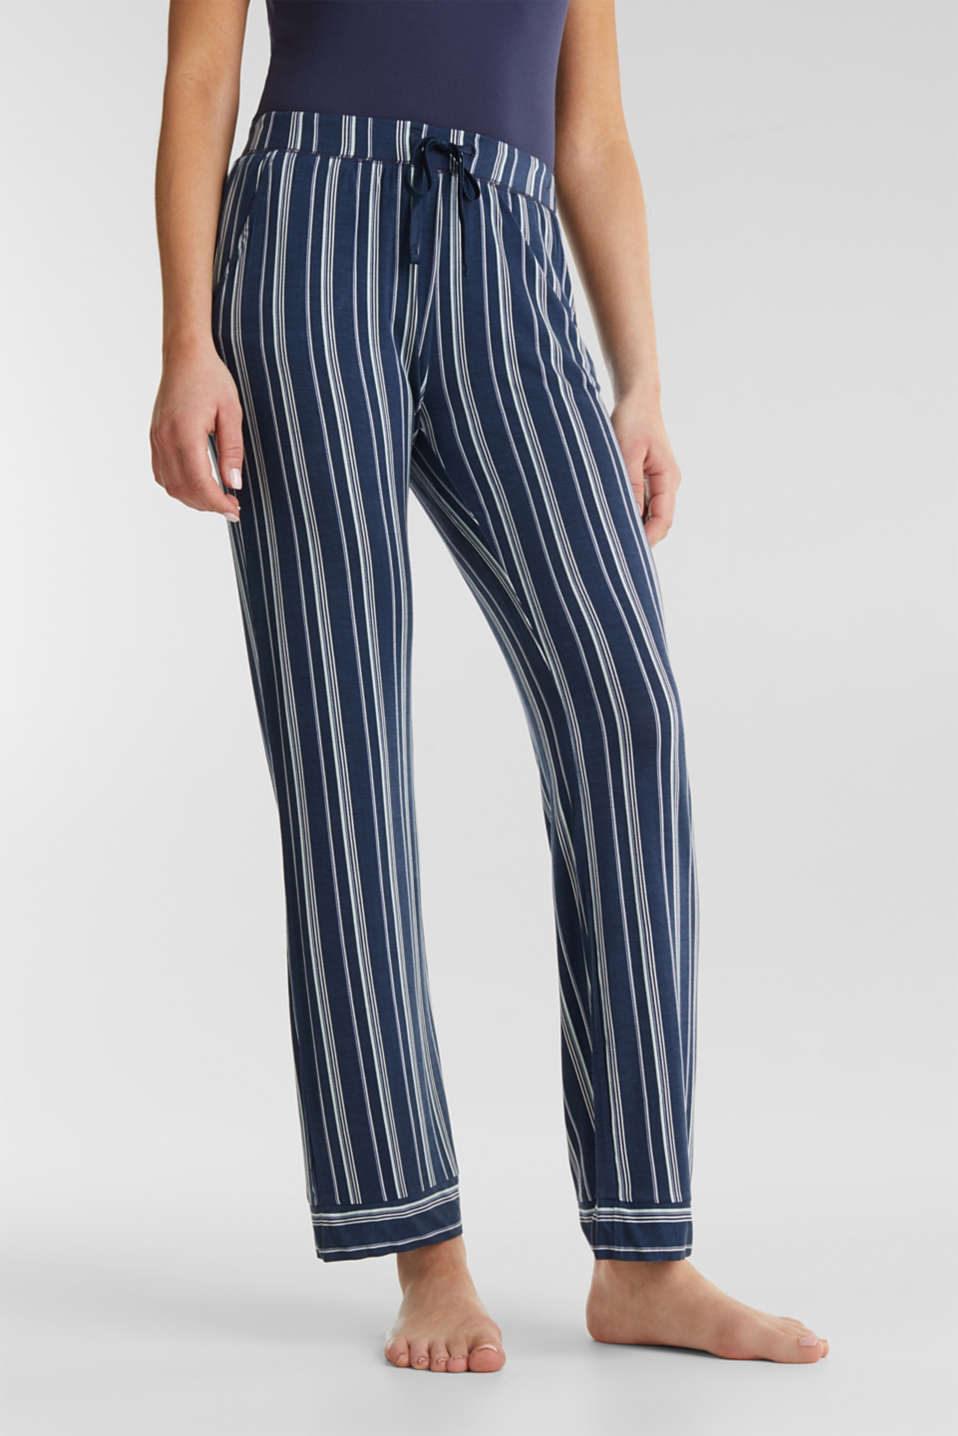 Esprit - Stretch jersey bottoms with stripes